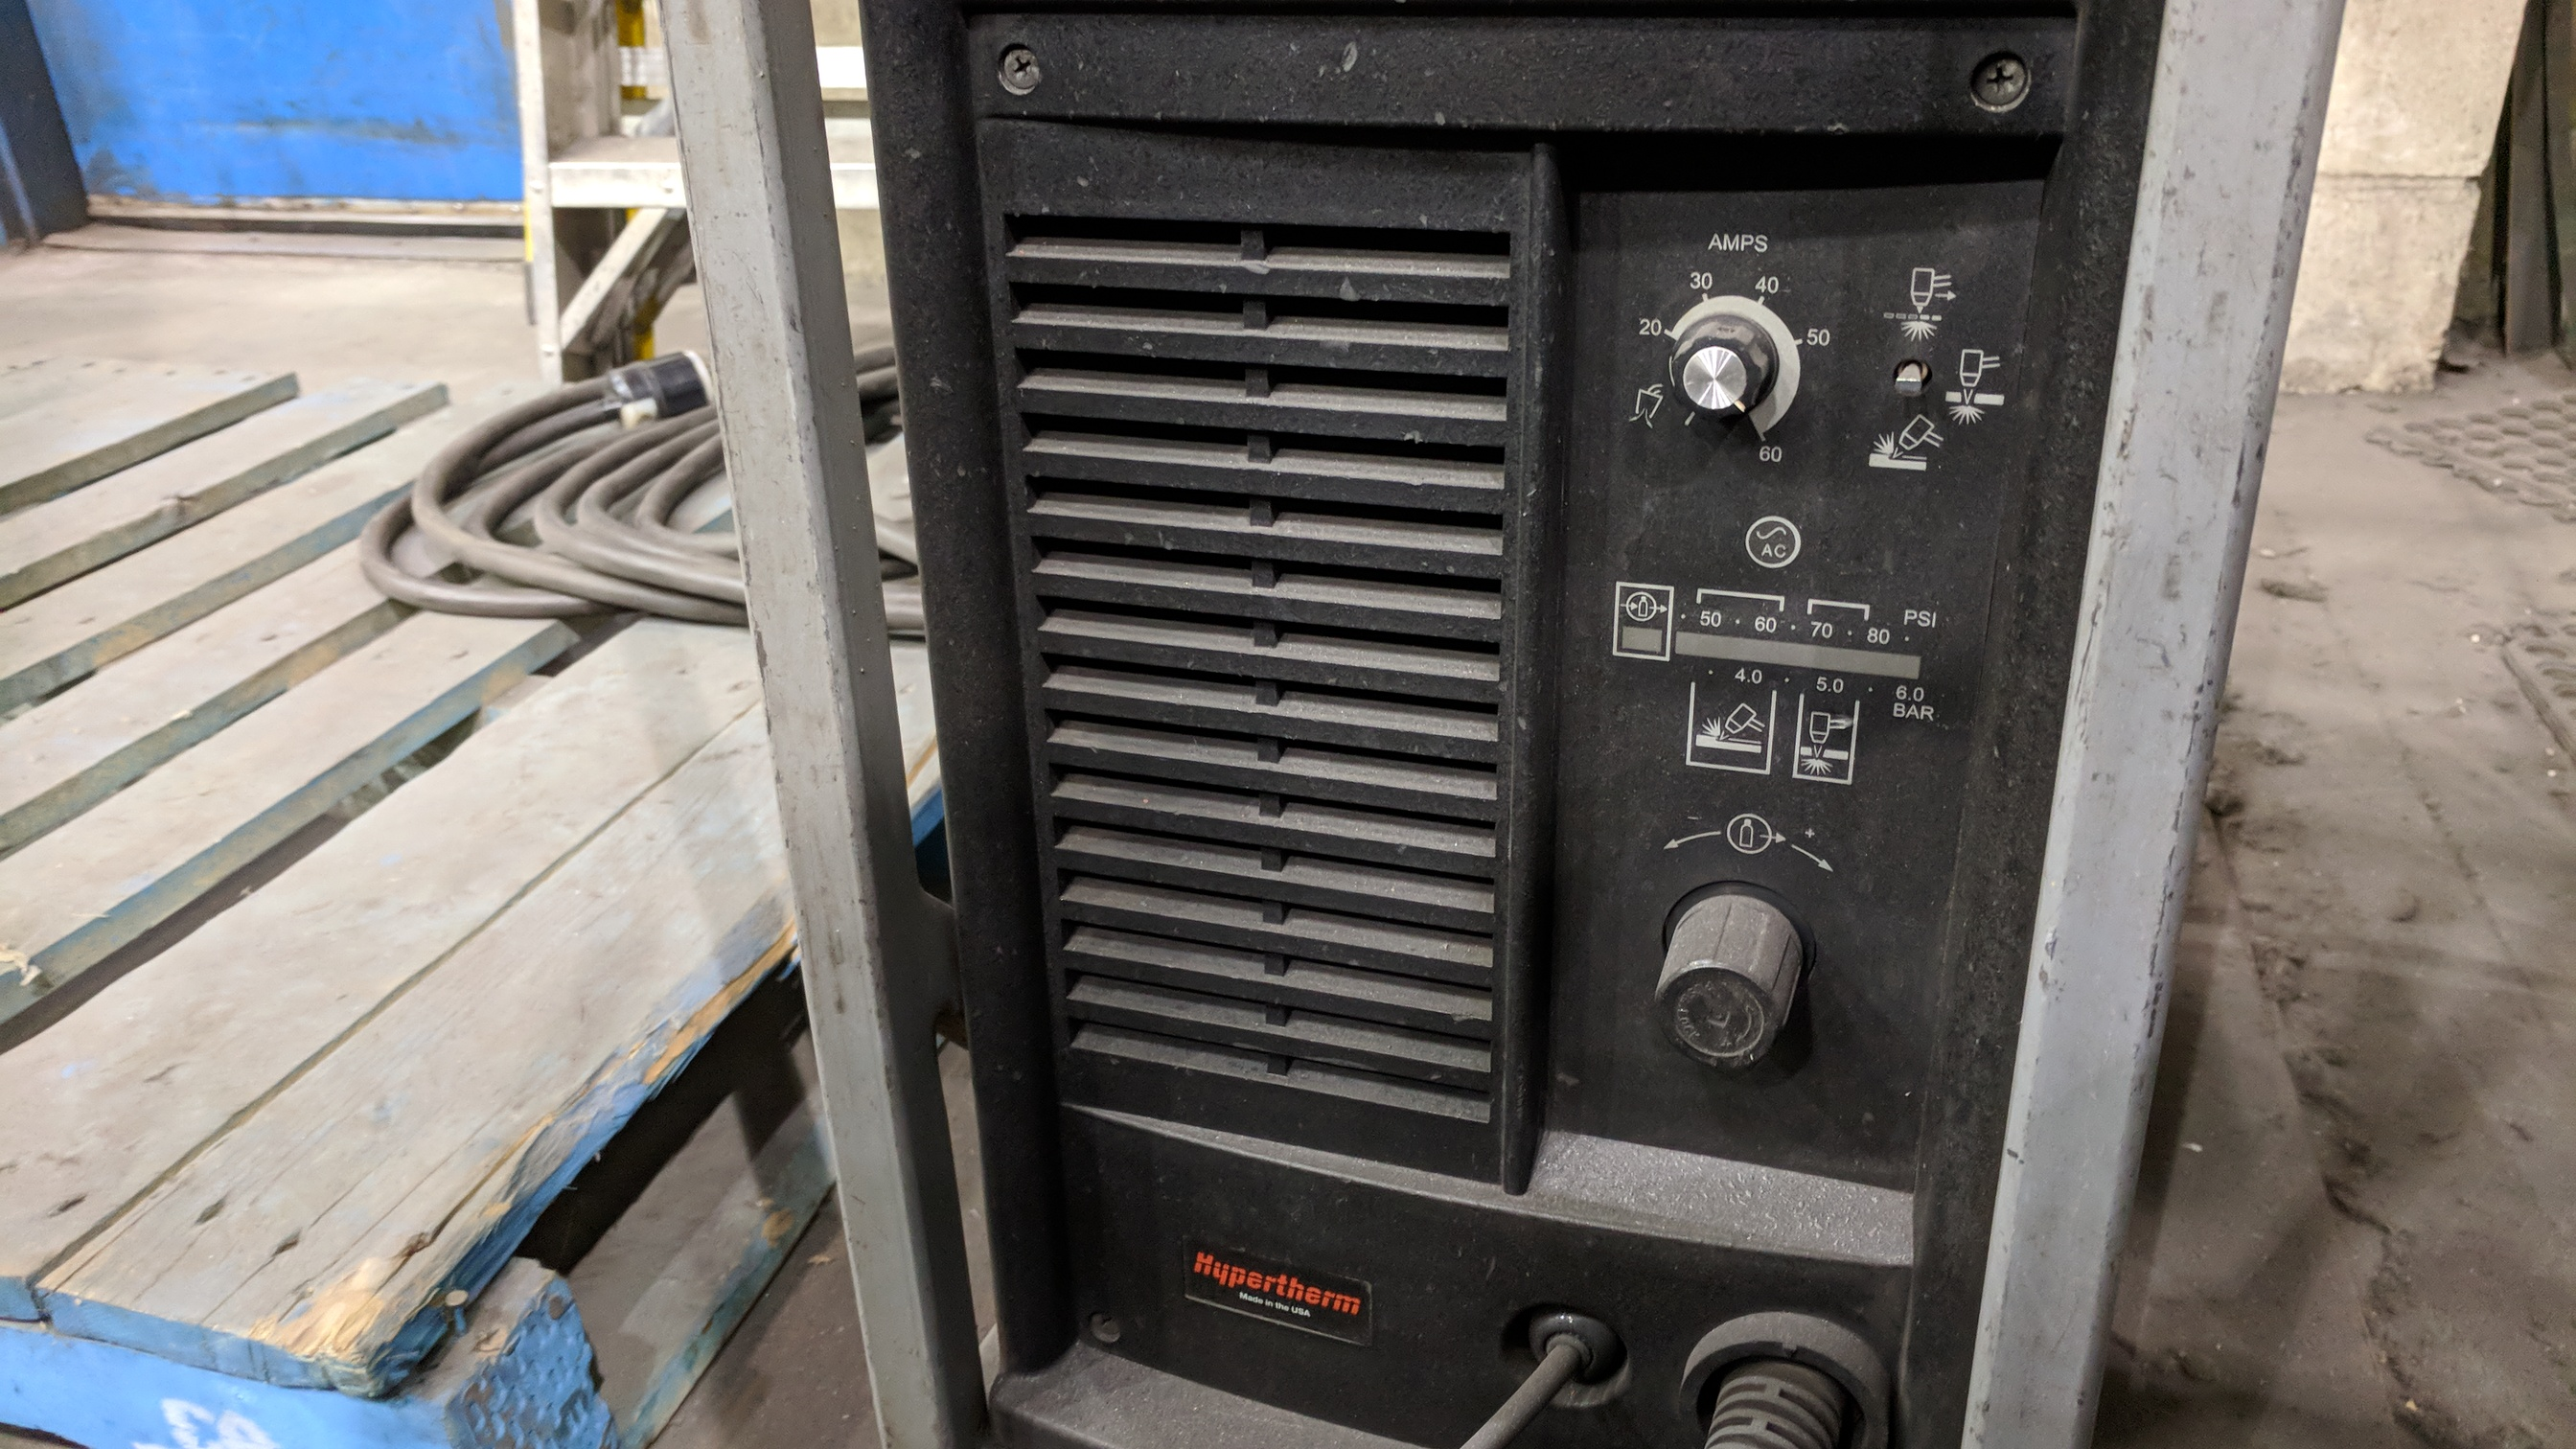 HYPERTHERM POWERMAX 1000 G3 SERIES PORTABLE PLASMA CUTTER WITH CABLES AND GUN, S/N N/A - Image 4 of 4